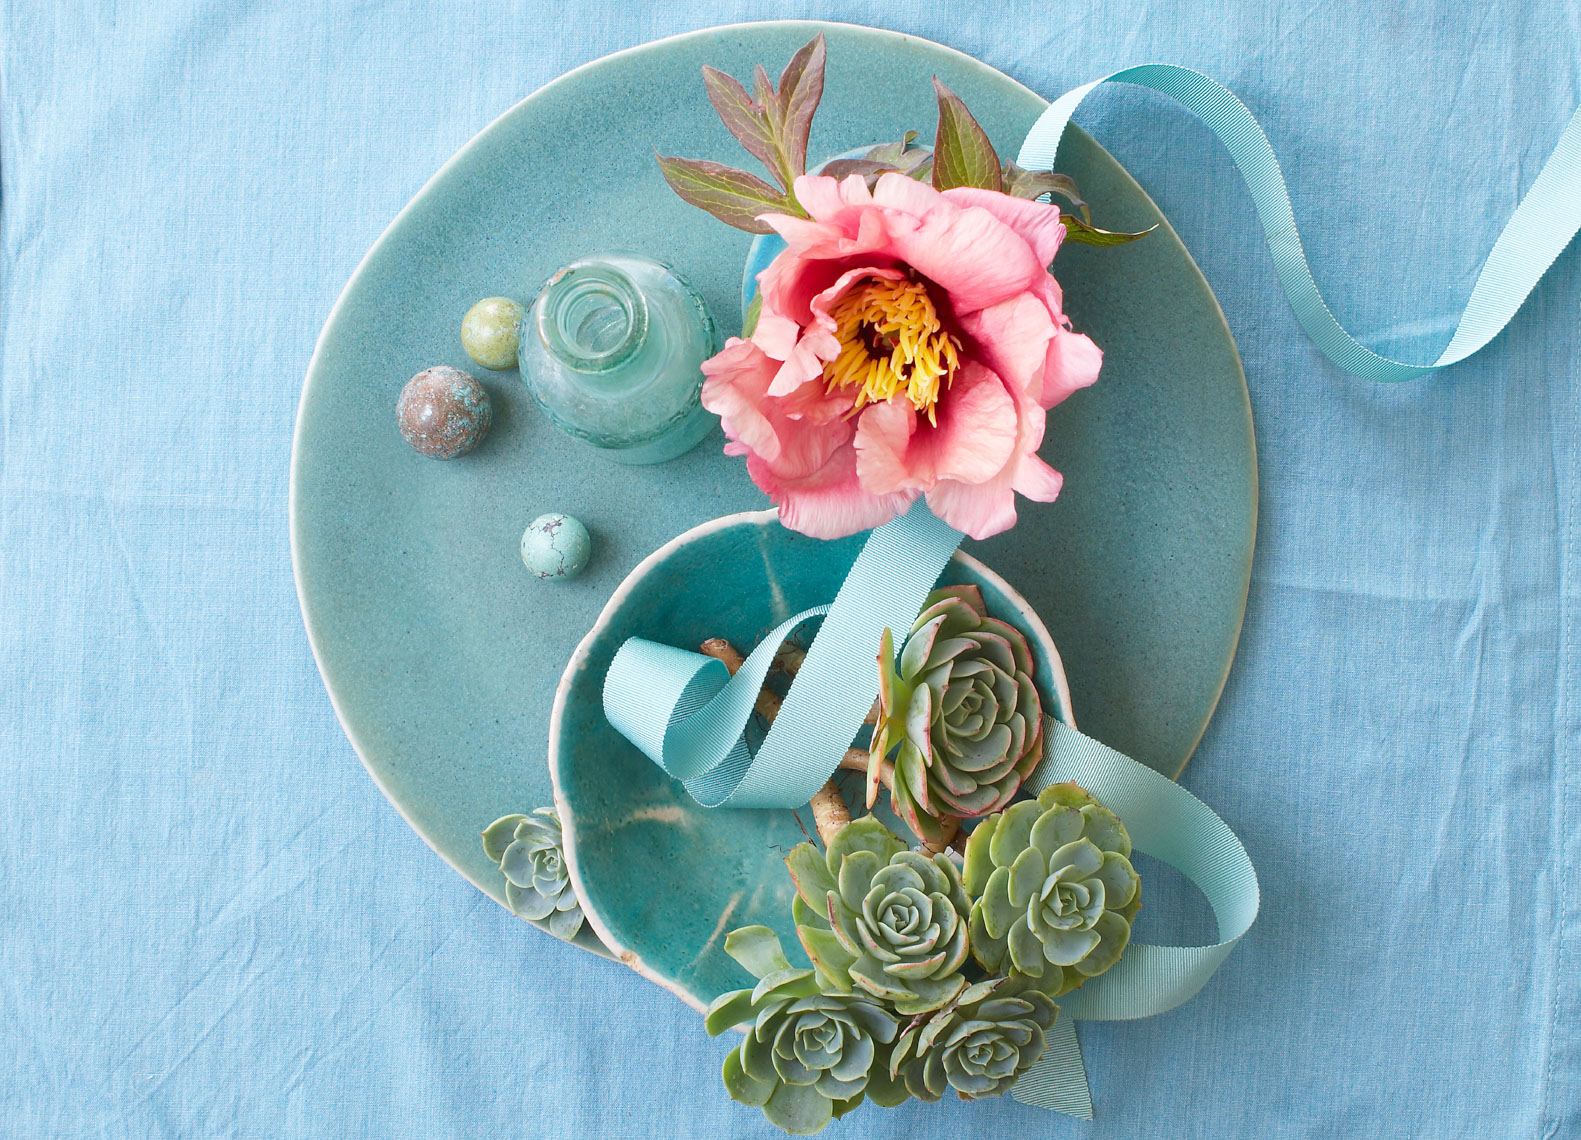 Flower and blue plate Still life Philip Harvey Photography, San Francisco, California, still life, interiors, lifestyle and product photography San Francisco product photographer